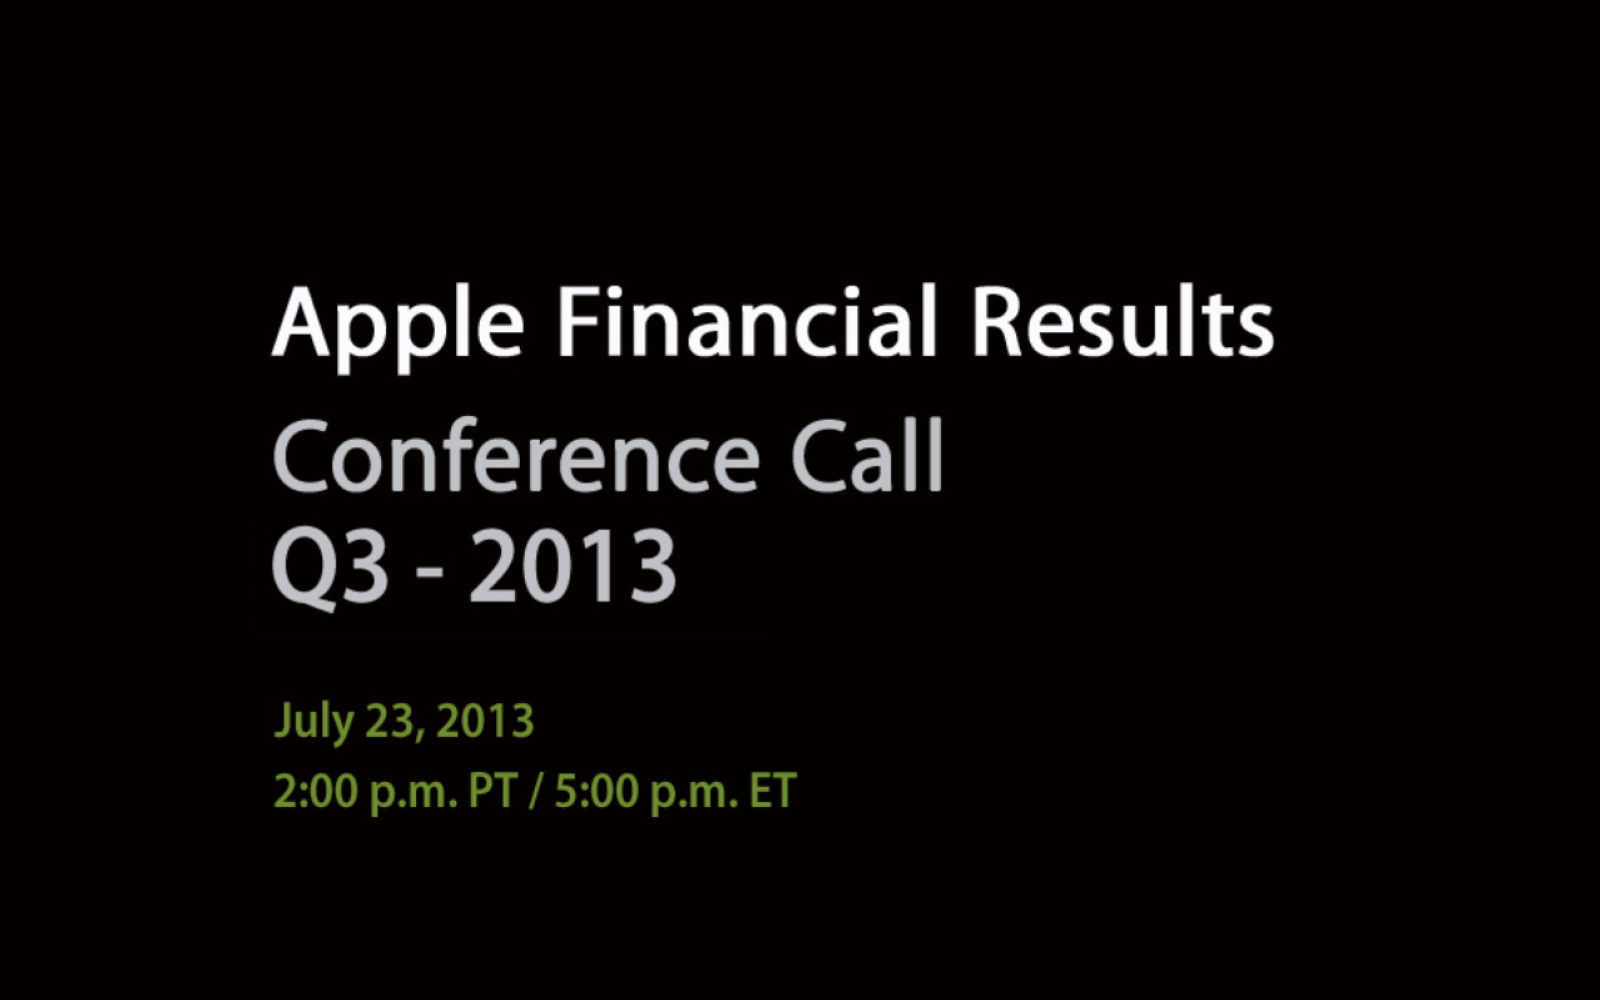 Apple to hold Q3 2013 earnings conference call on Tuesday, July 23rd